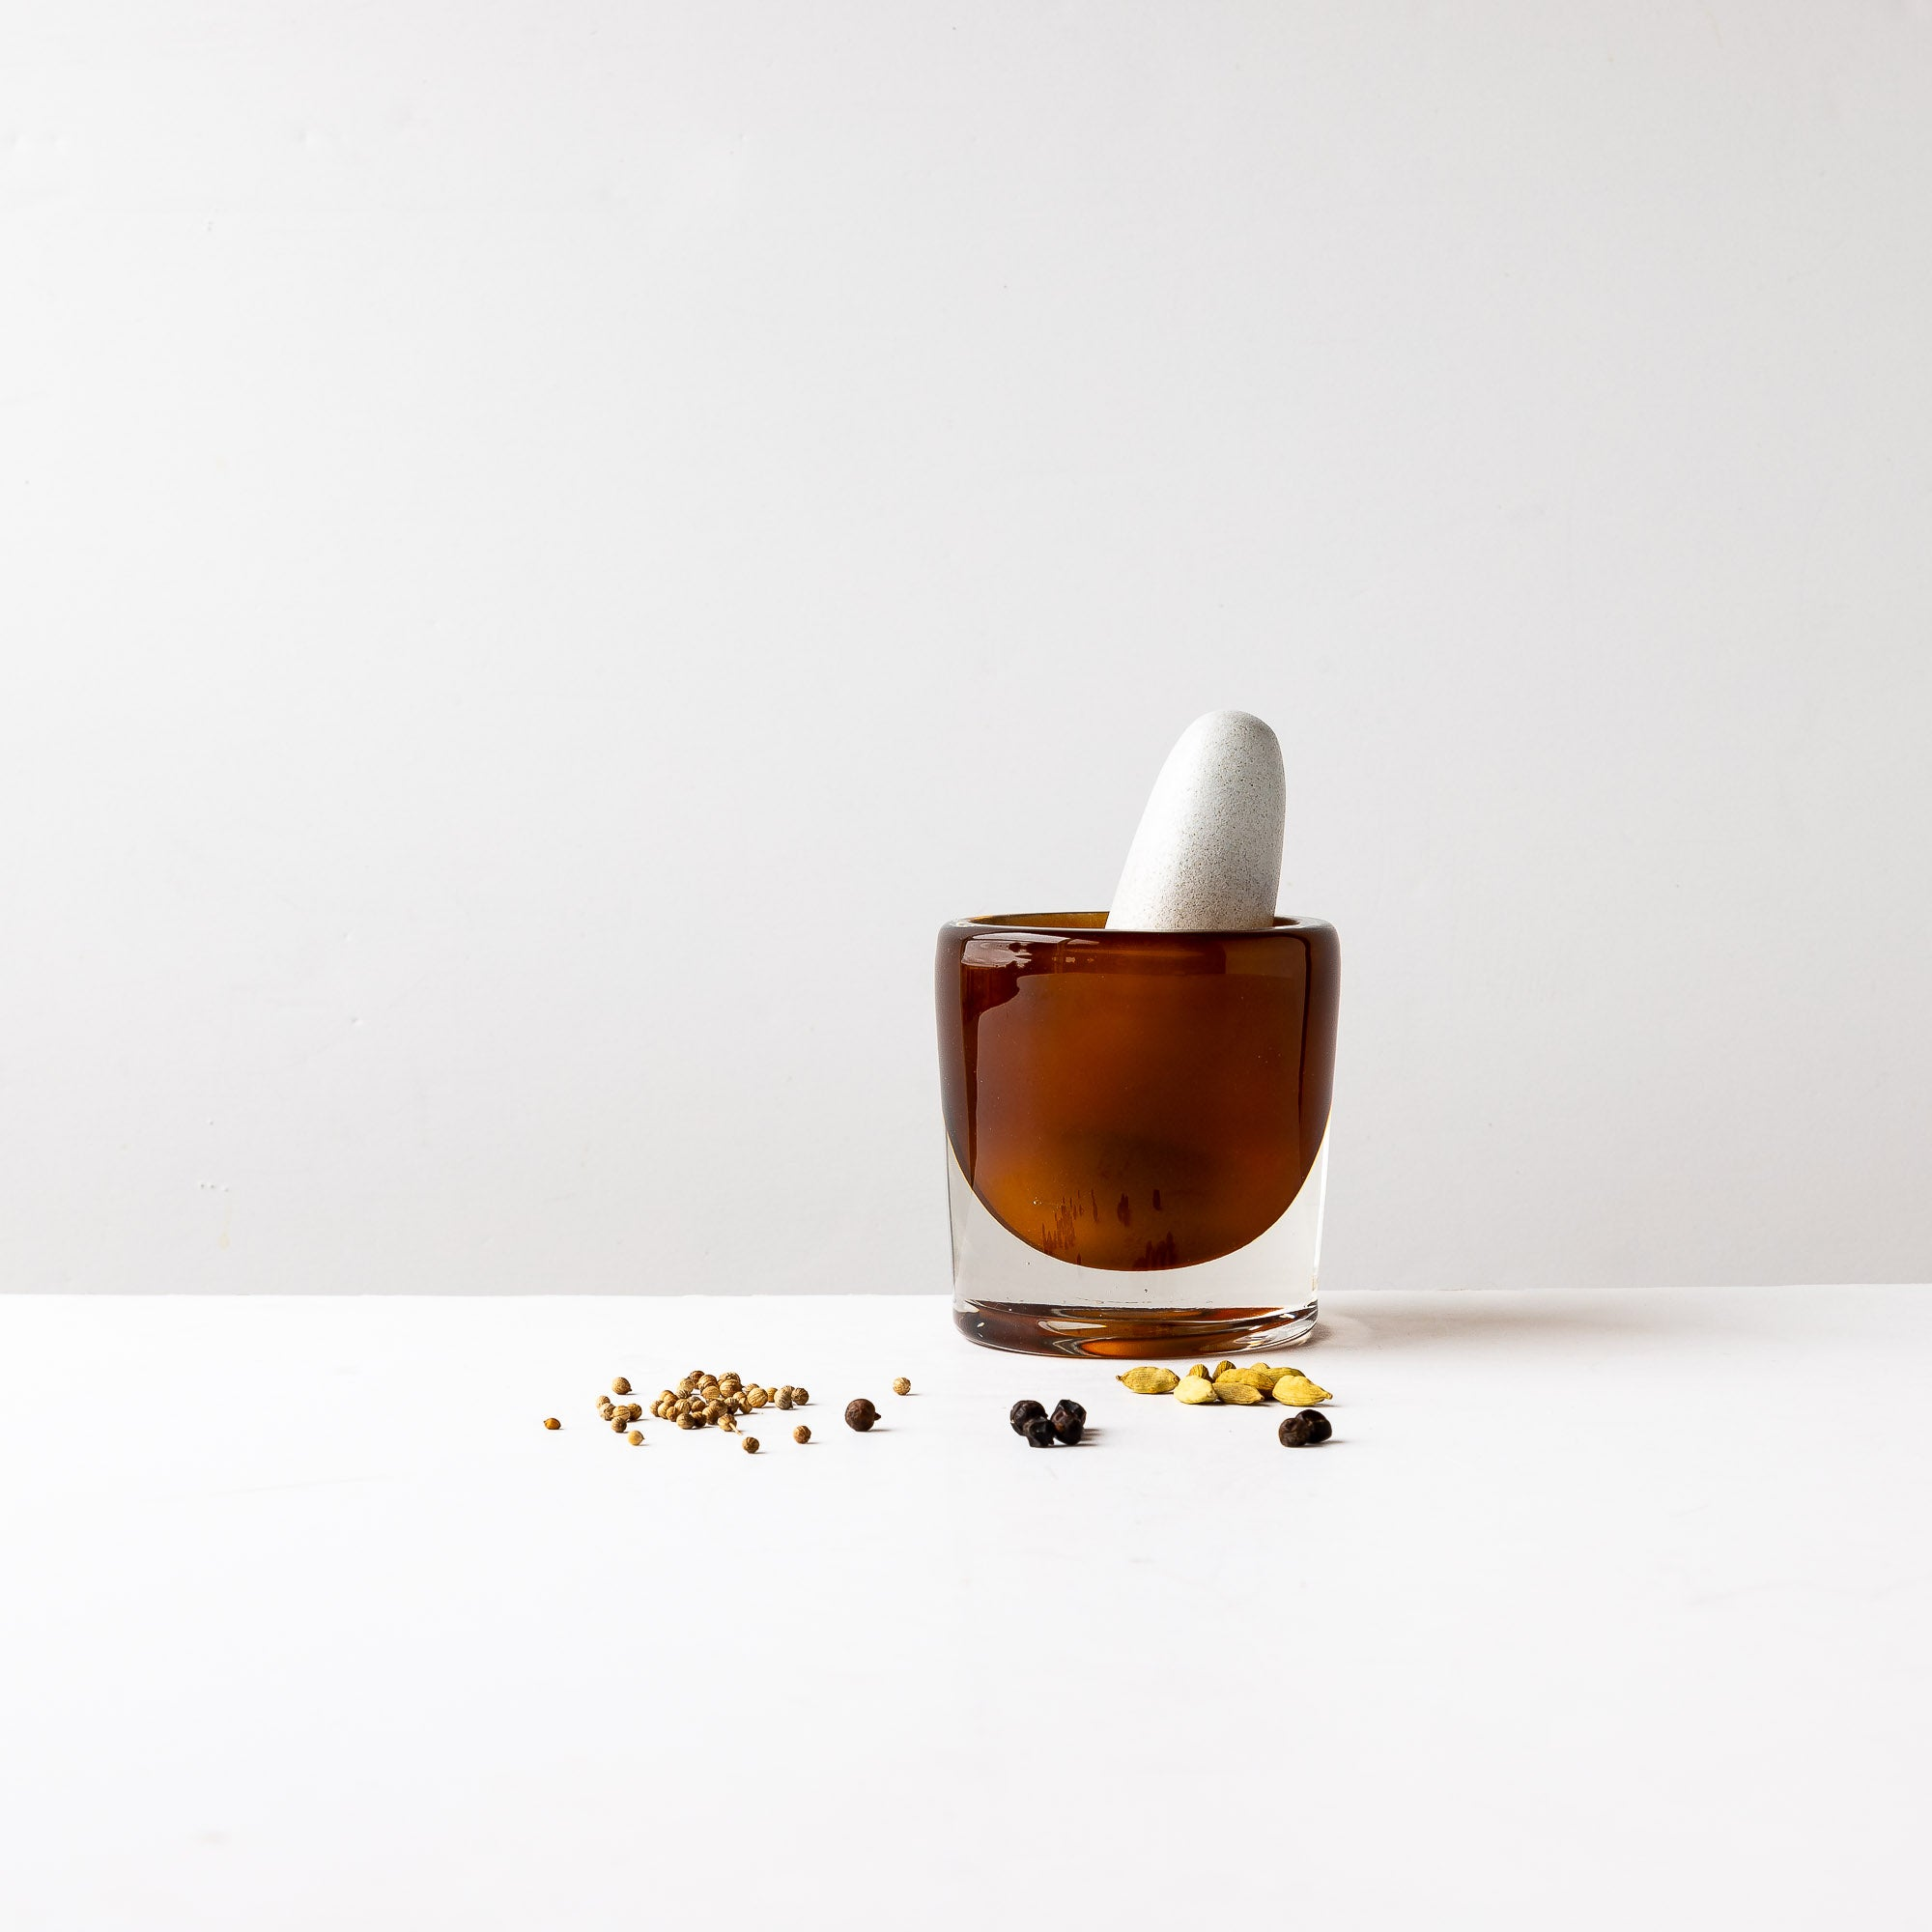 Amber Pestle & Mortar in Blown Glass & Ceramic - Sold by Chic & Basta